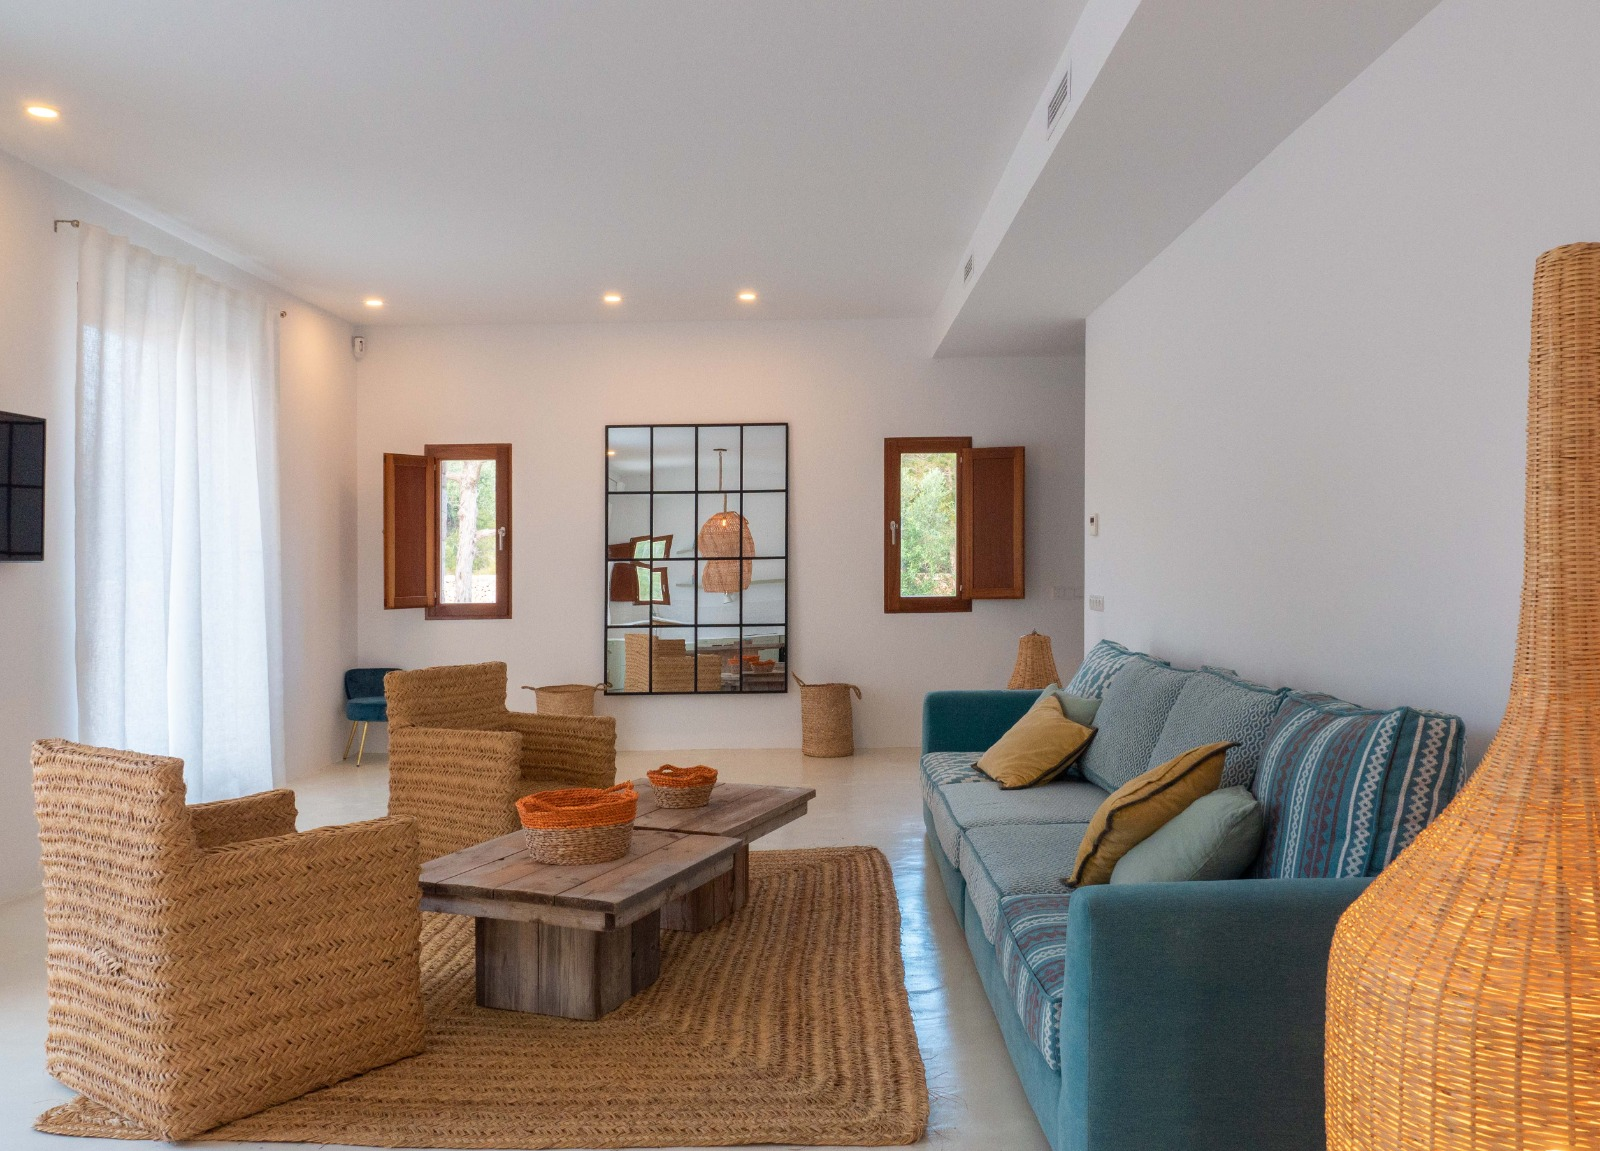 Beautiful house in Formentera 900 meters from the beach for sale